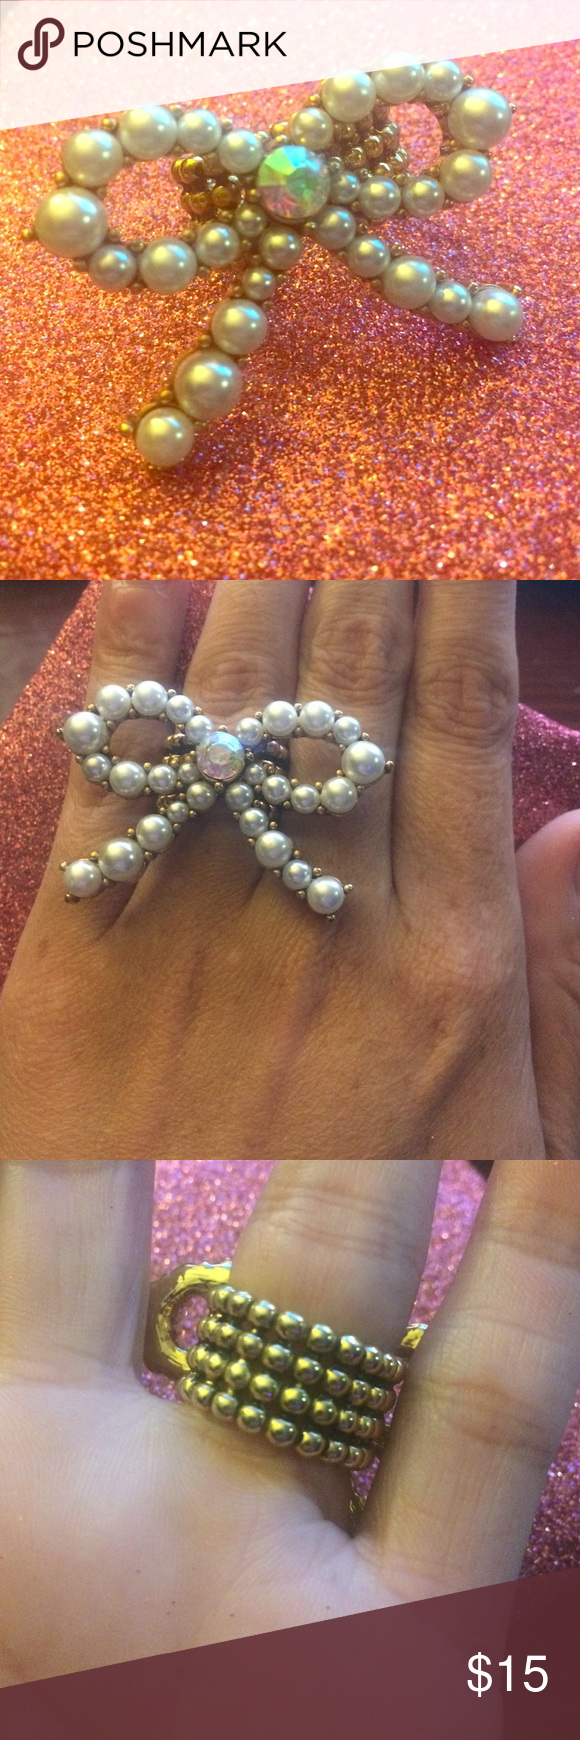 Betsey Johnson Bow stretch ring Stretch ring. In pearls with abs crystal center gem. Goldtone Betsey Johnson Jewelry Rings